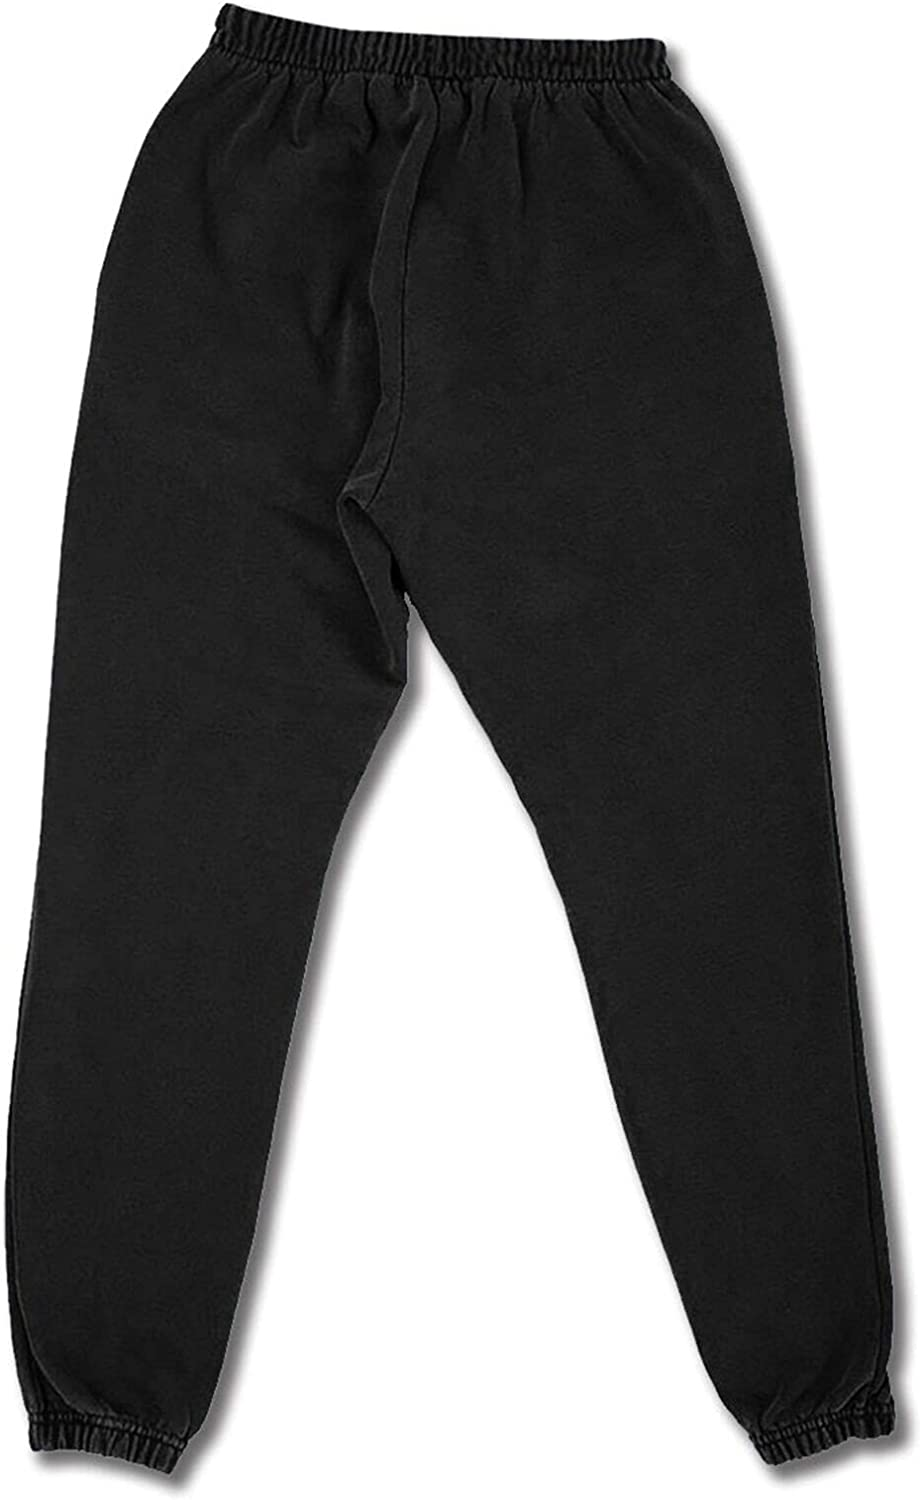 KAWAHATA US Army 4th Infantry Division Veteran Men's Pants with Pockets Tapered Athletic Sweatpants 3D Casual Active Sports Pants Large White